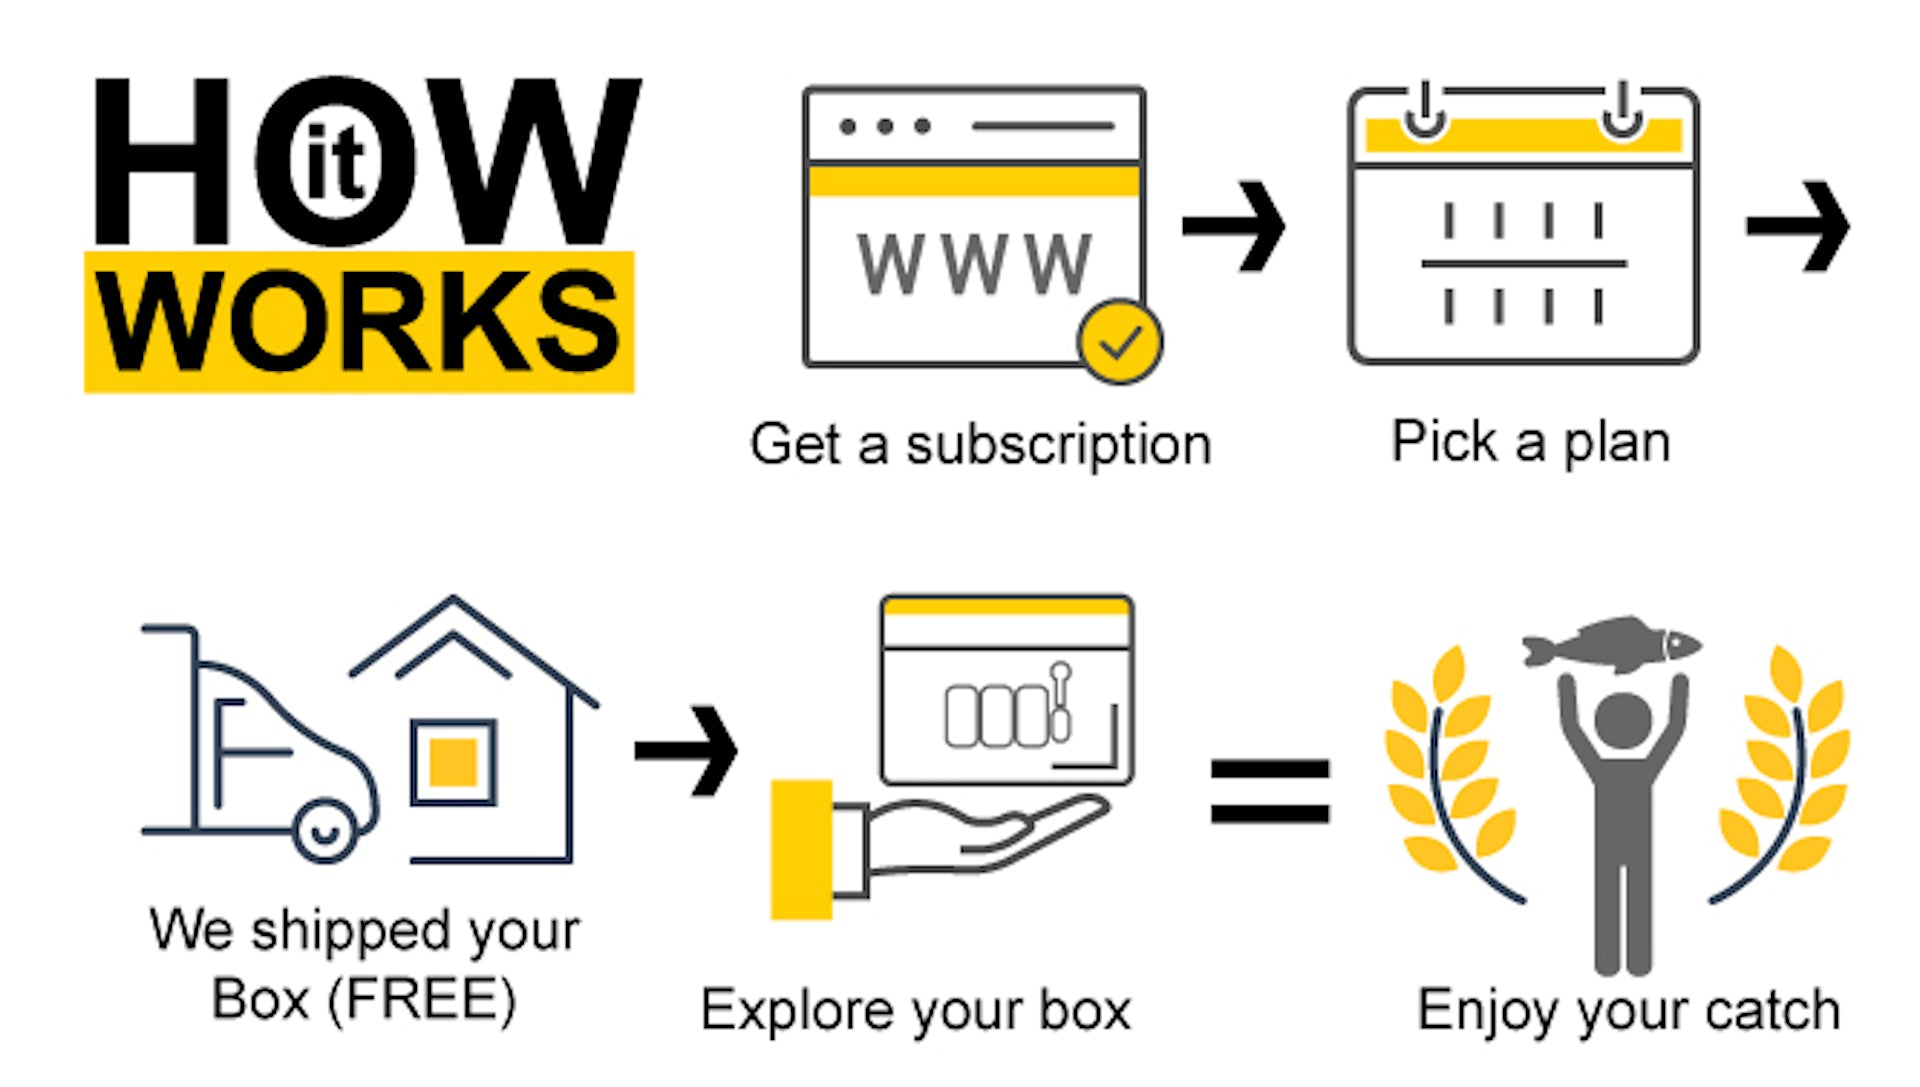 Instruction on how to subscribe to tackle box lottery.